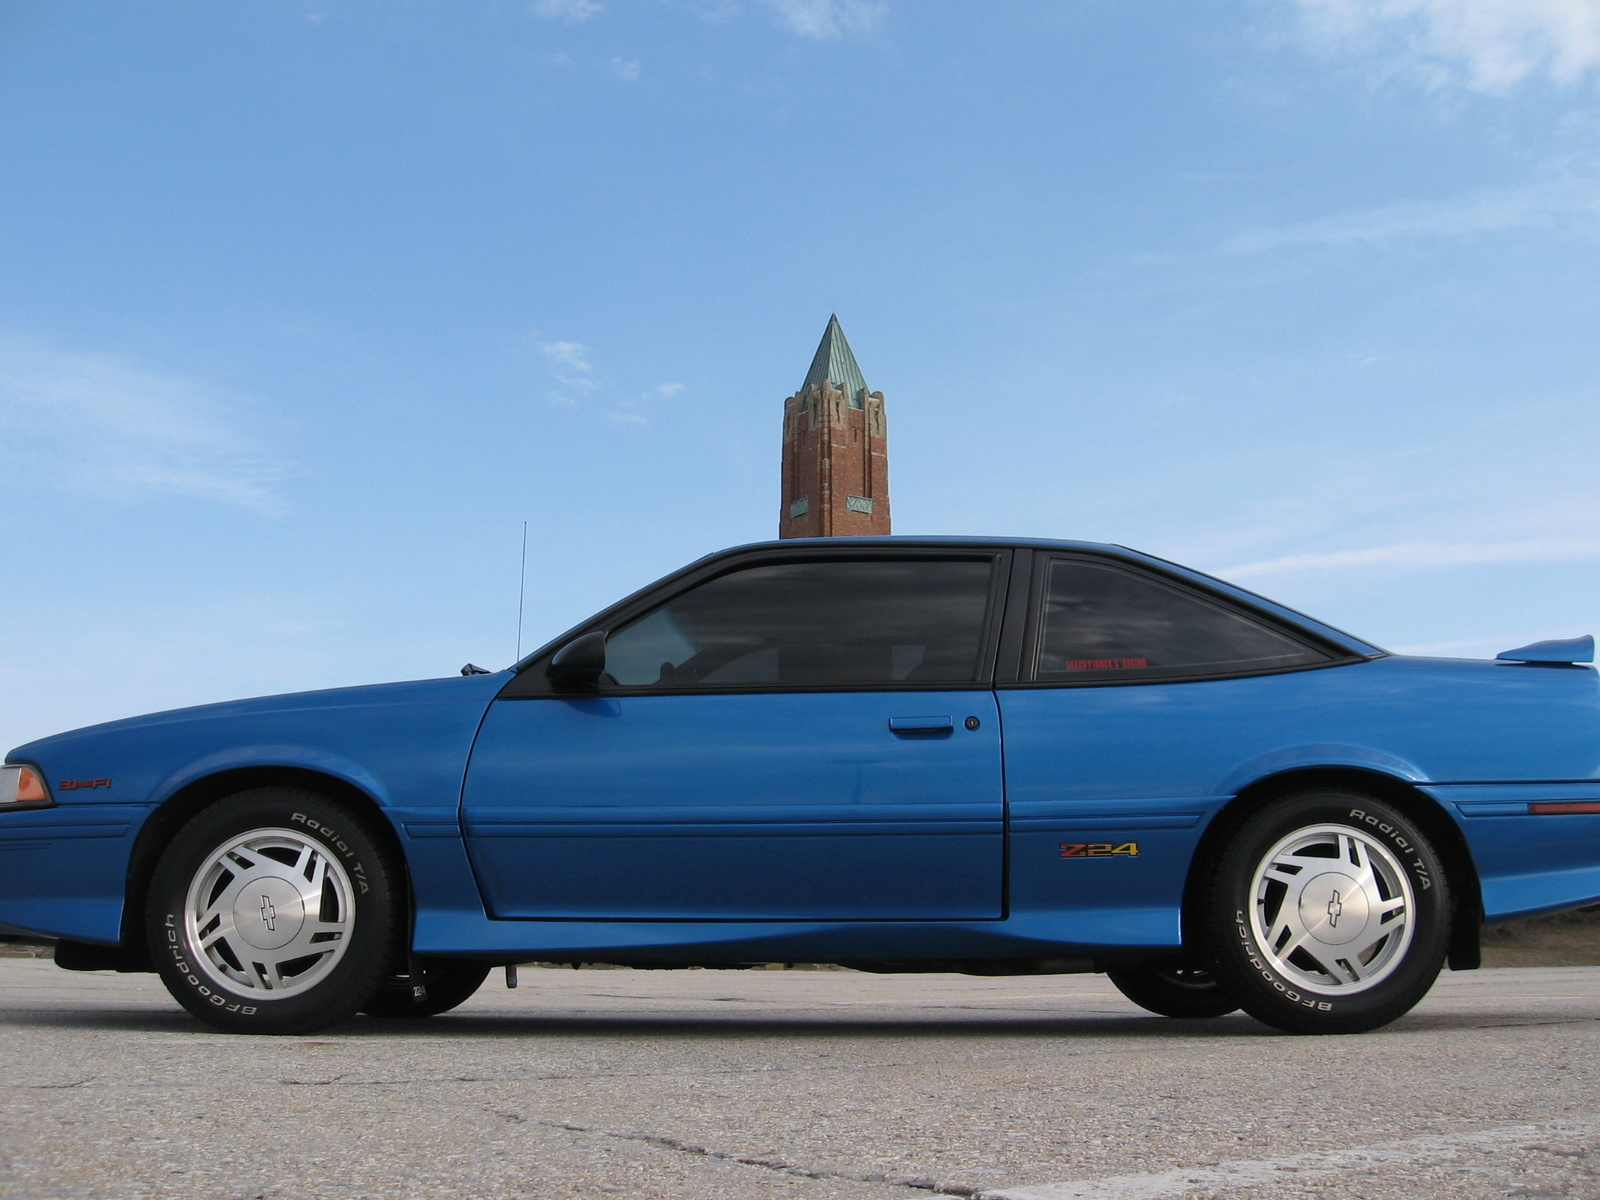 1993 chevy cavalier z24 for sale car pictures